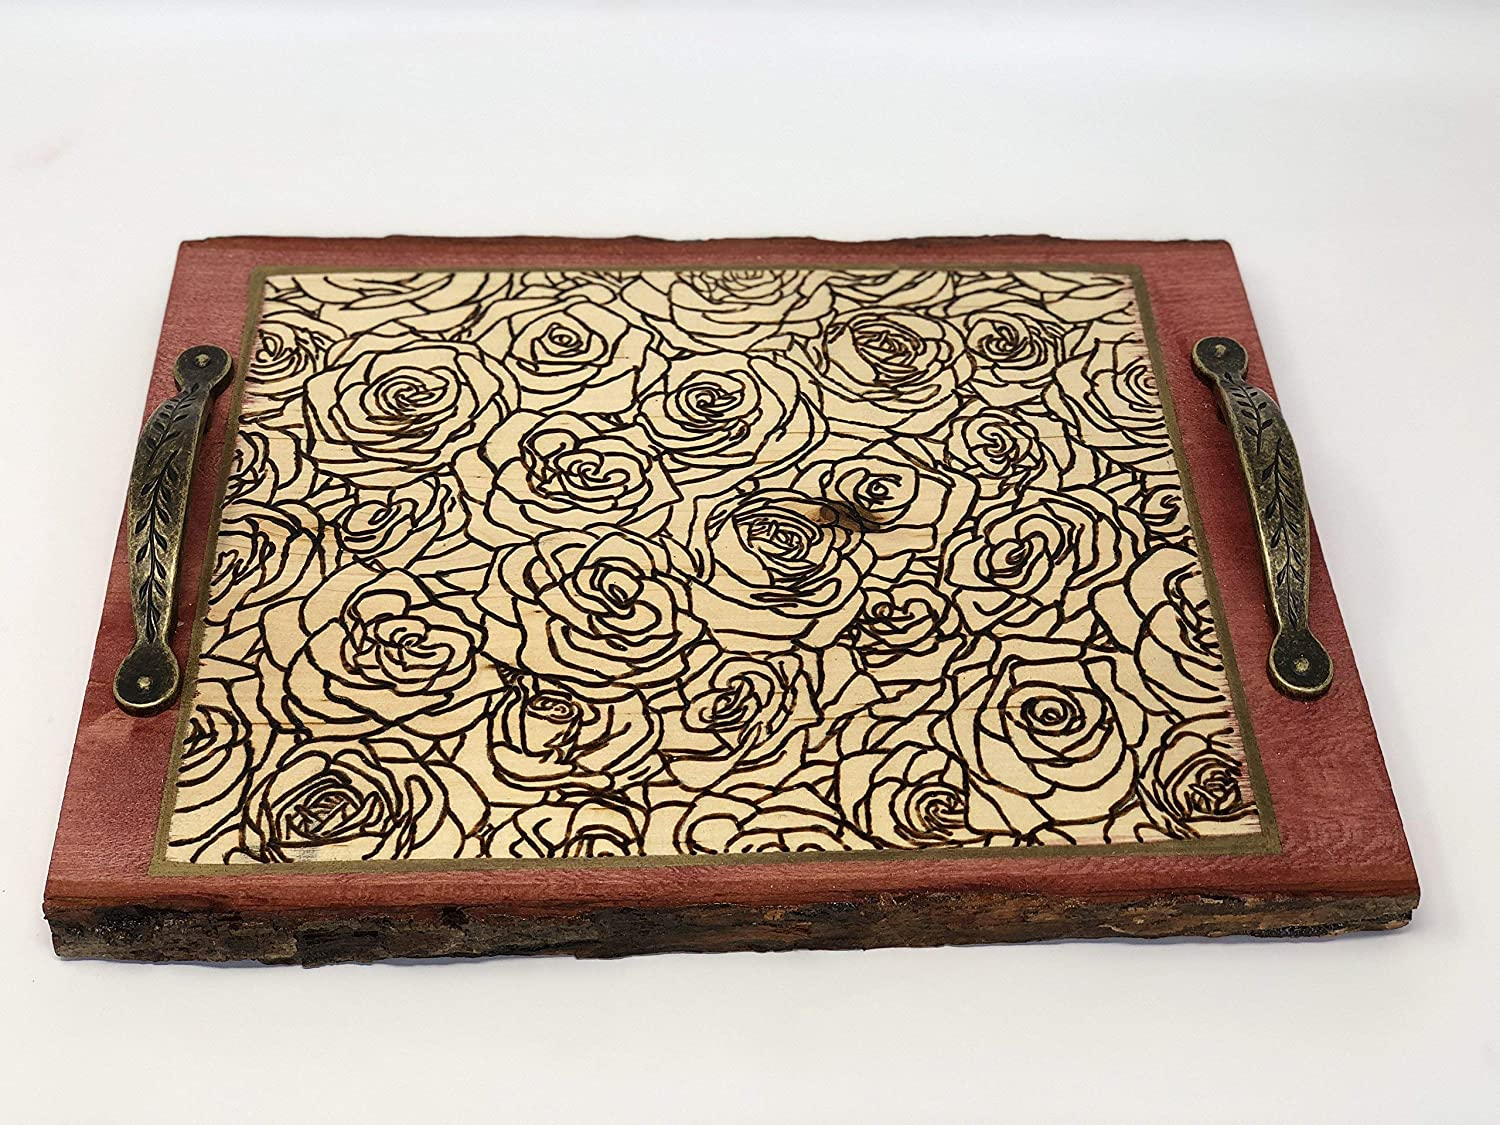 The Arabesque - Exquisite Handmade and Handcrafted Woodburned Rustic Rose Patterned Tray For Coffee Table Or Ottoman - Perfect Home, Office, Or Wedding Decor